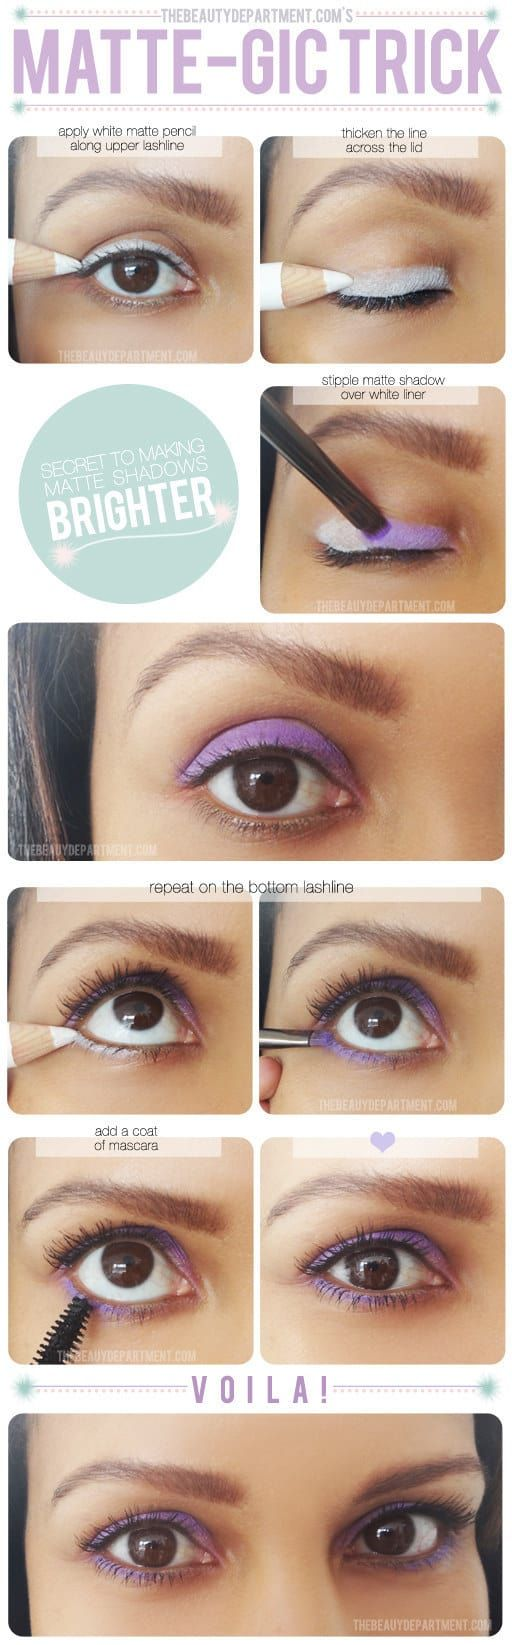 Get more details on this tutorial here.